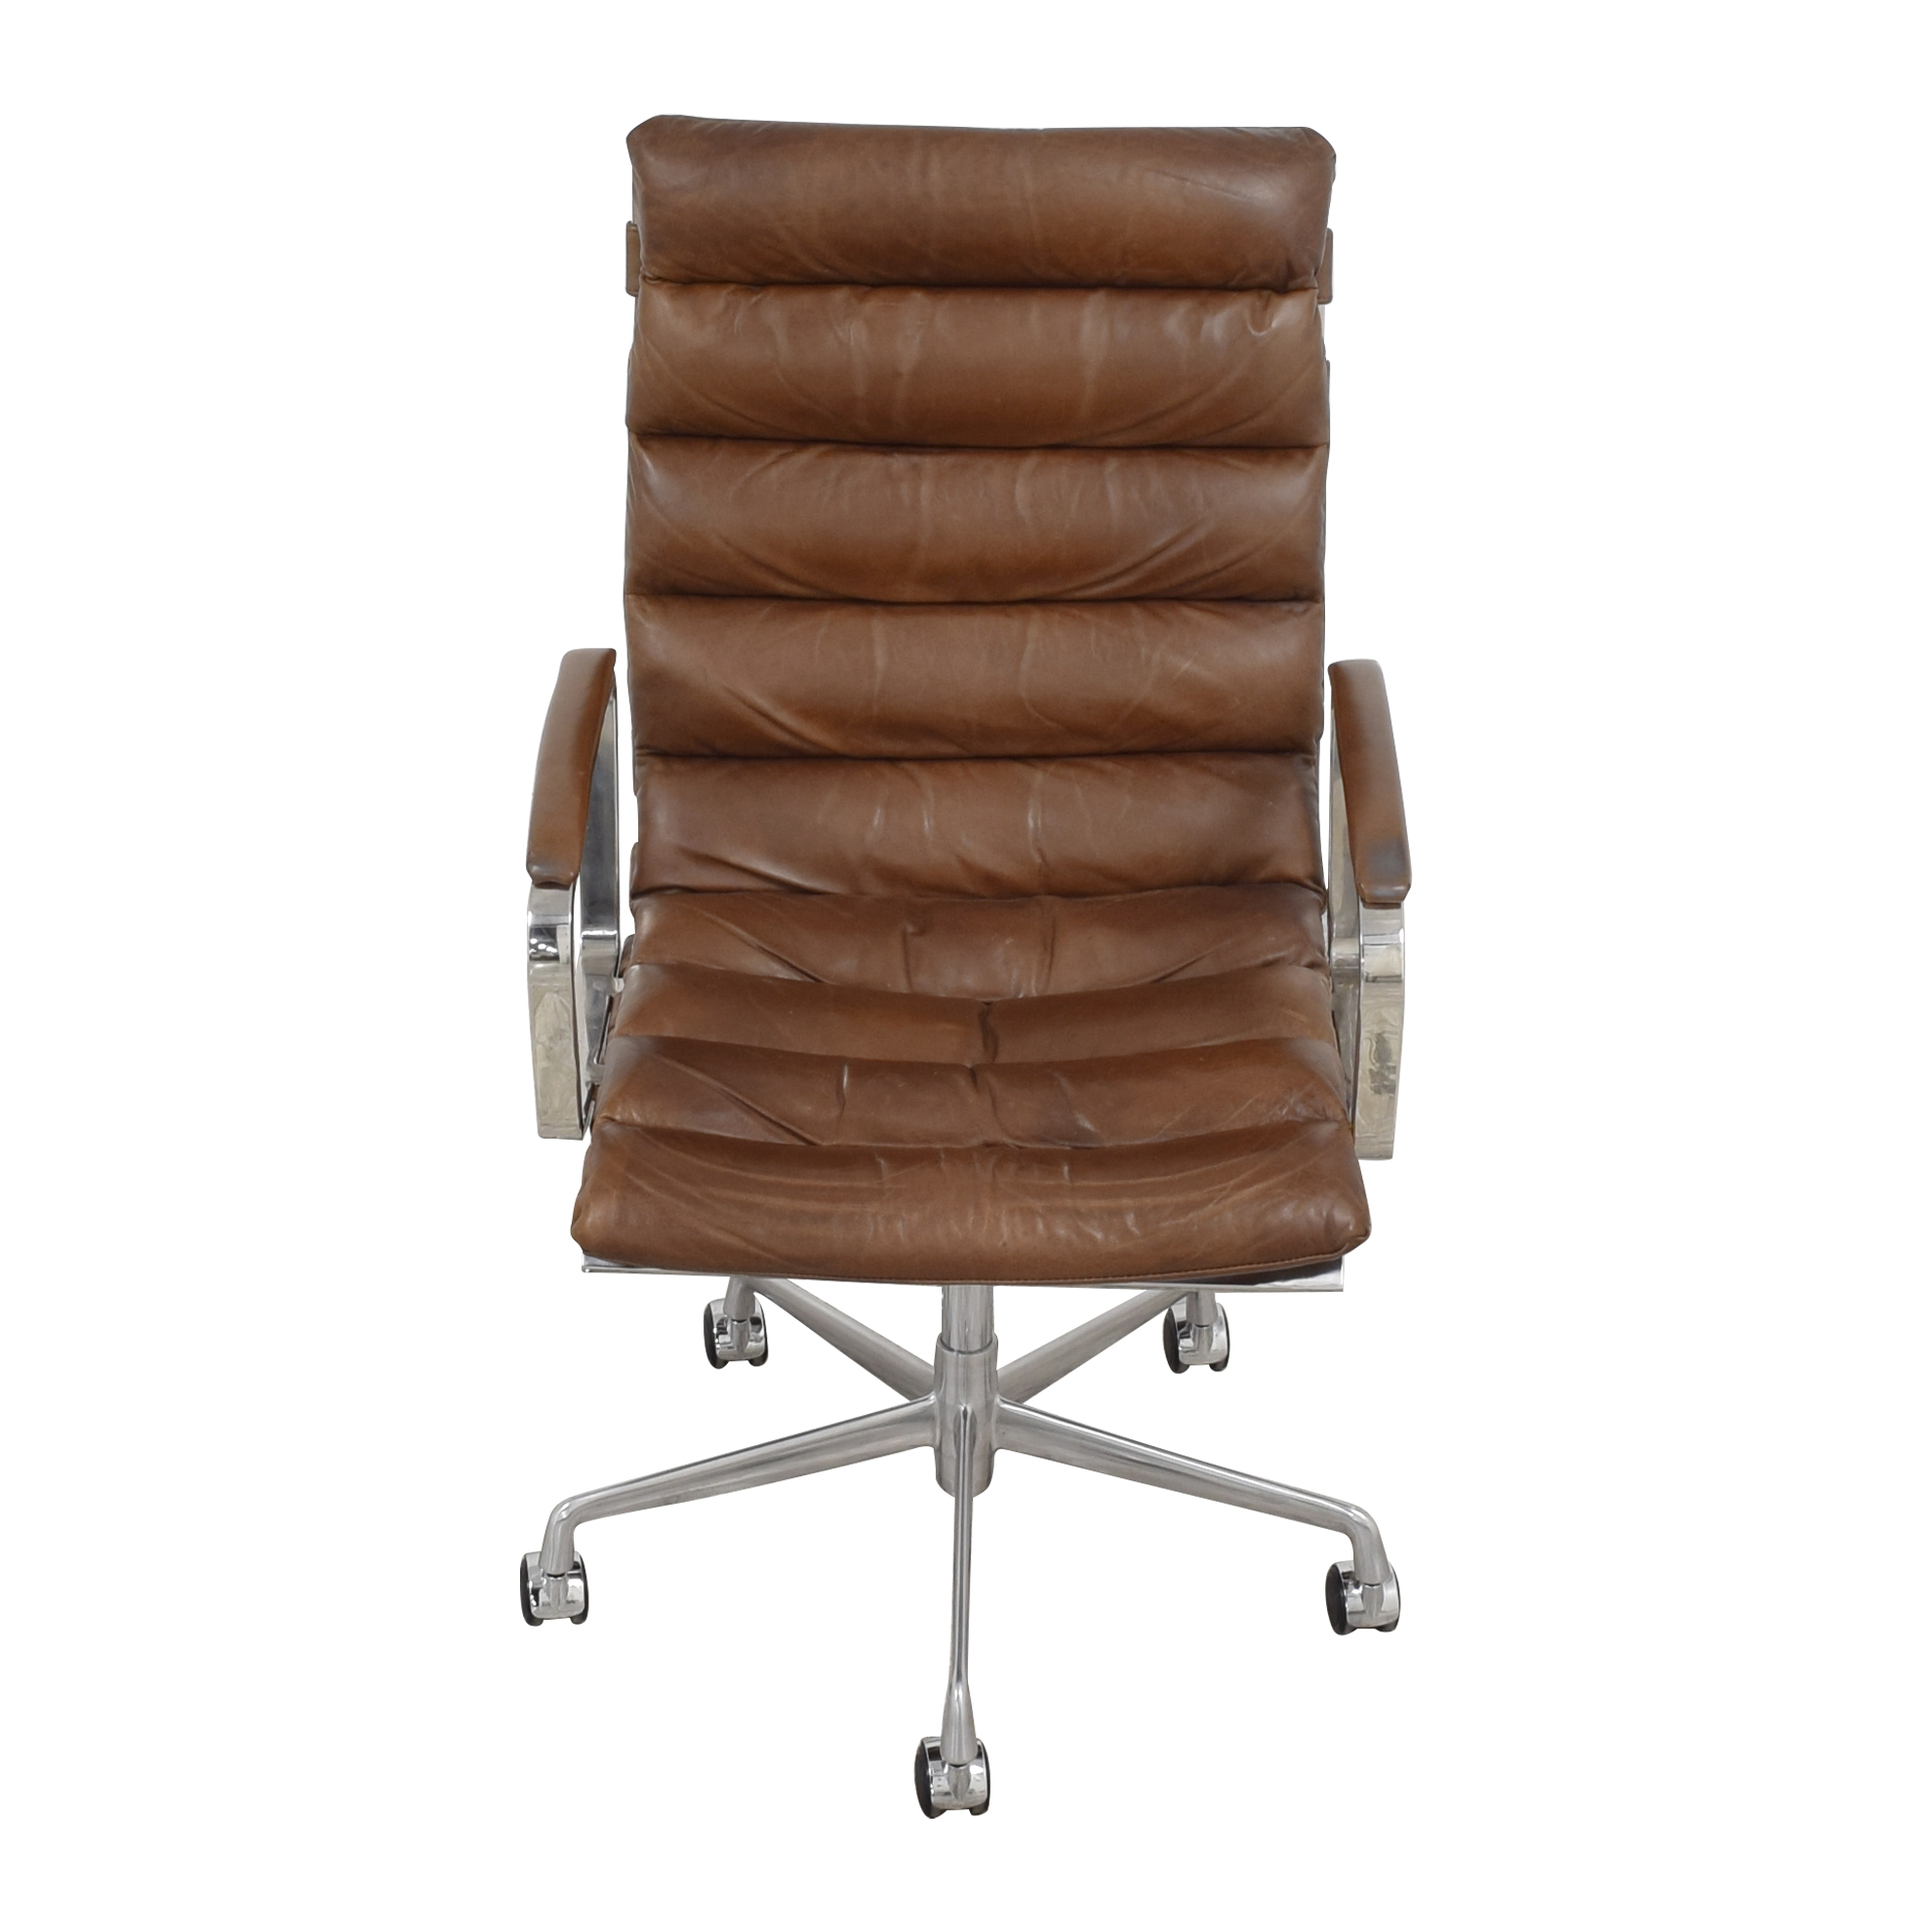 buy Restoration Hardware Oviedo Leather Desk Chair Restoration Hardware Chairs